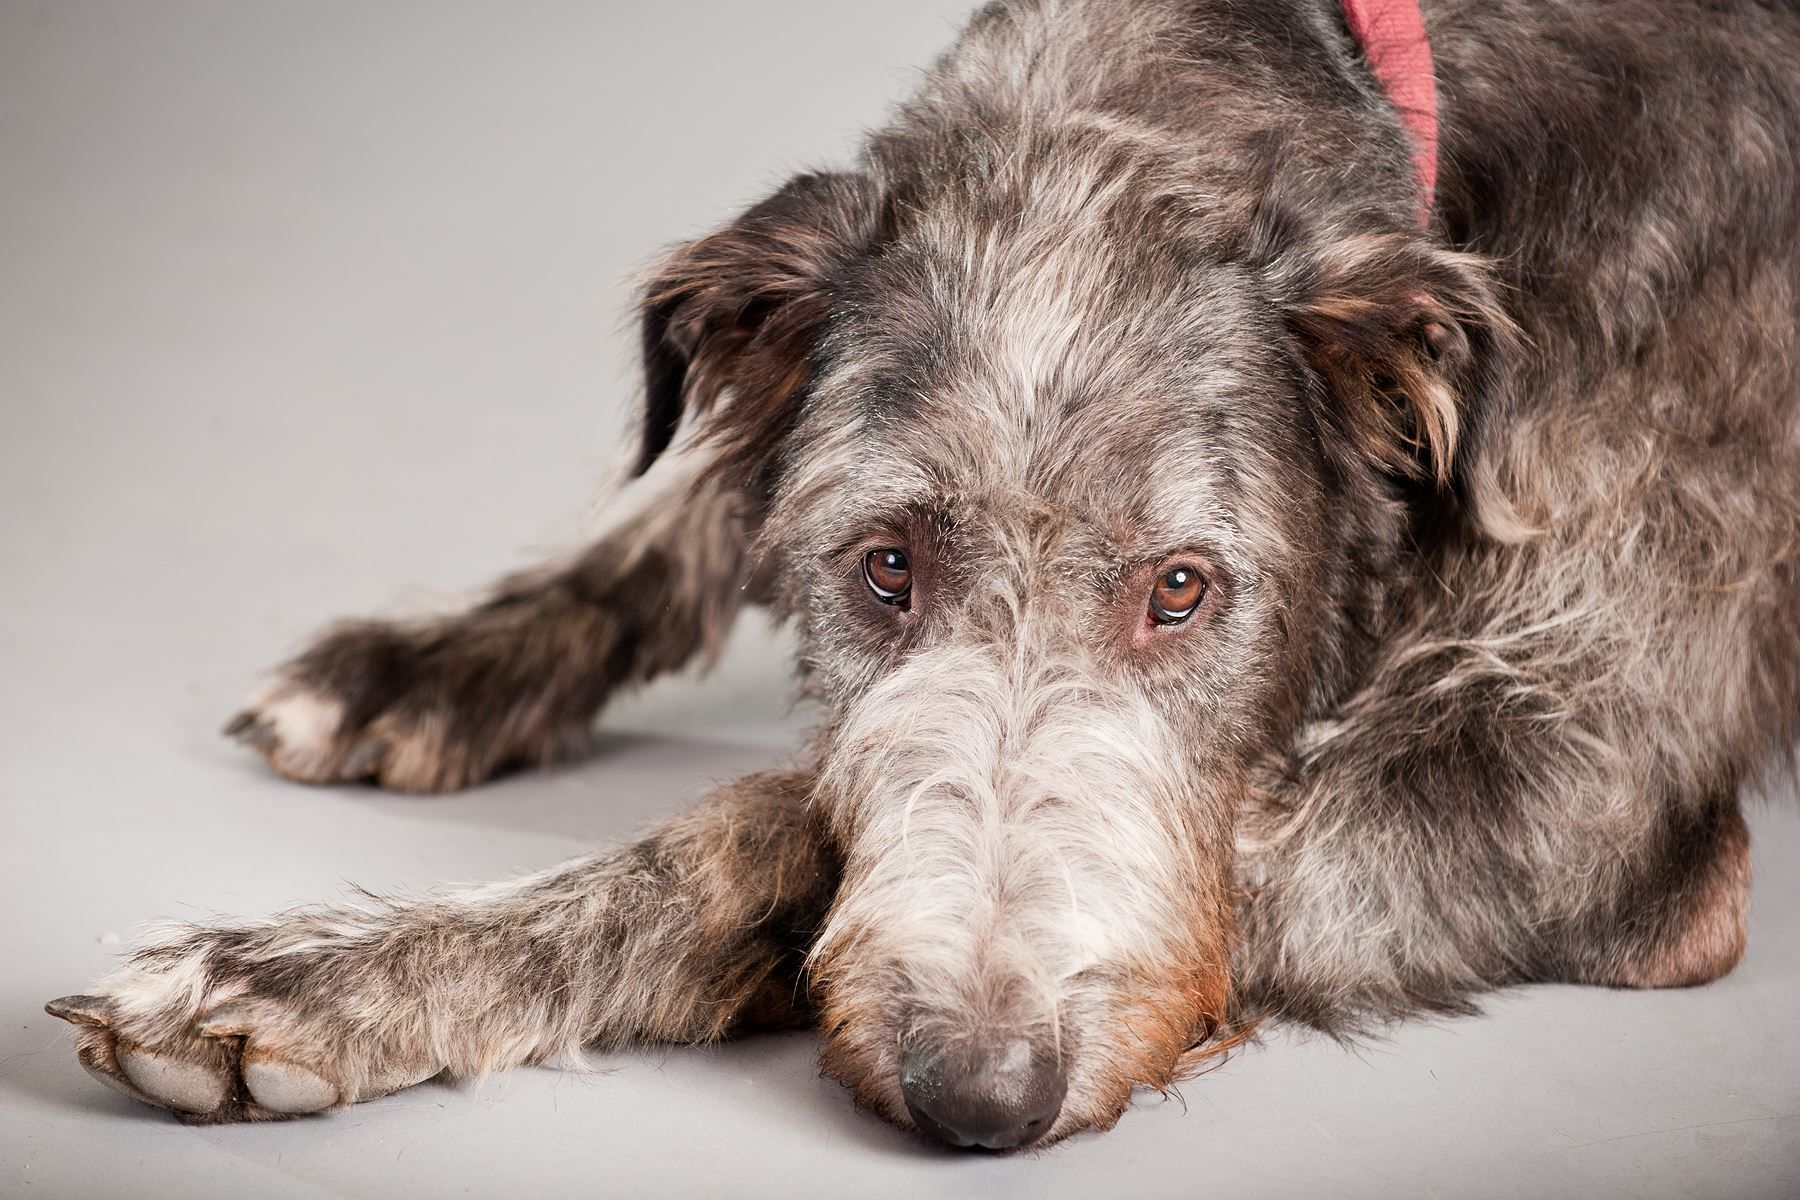 Irish Wolfhounds are sighthounds, the tallest breed of